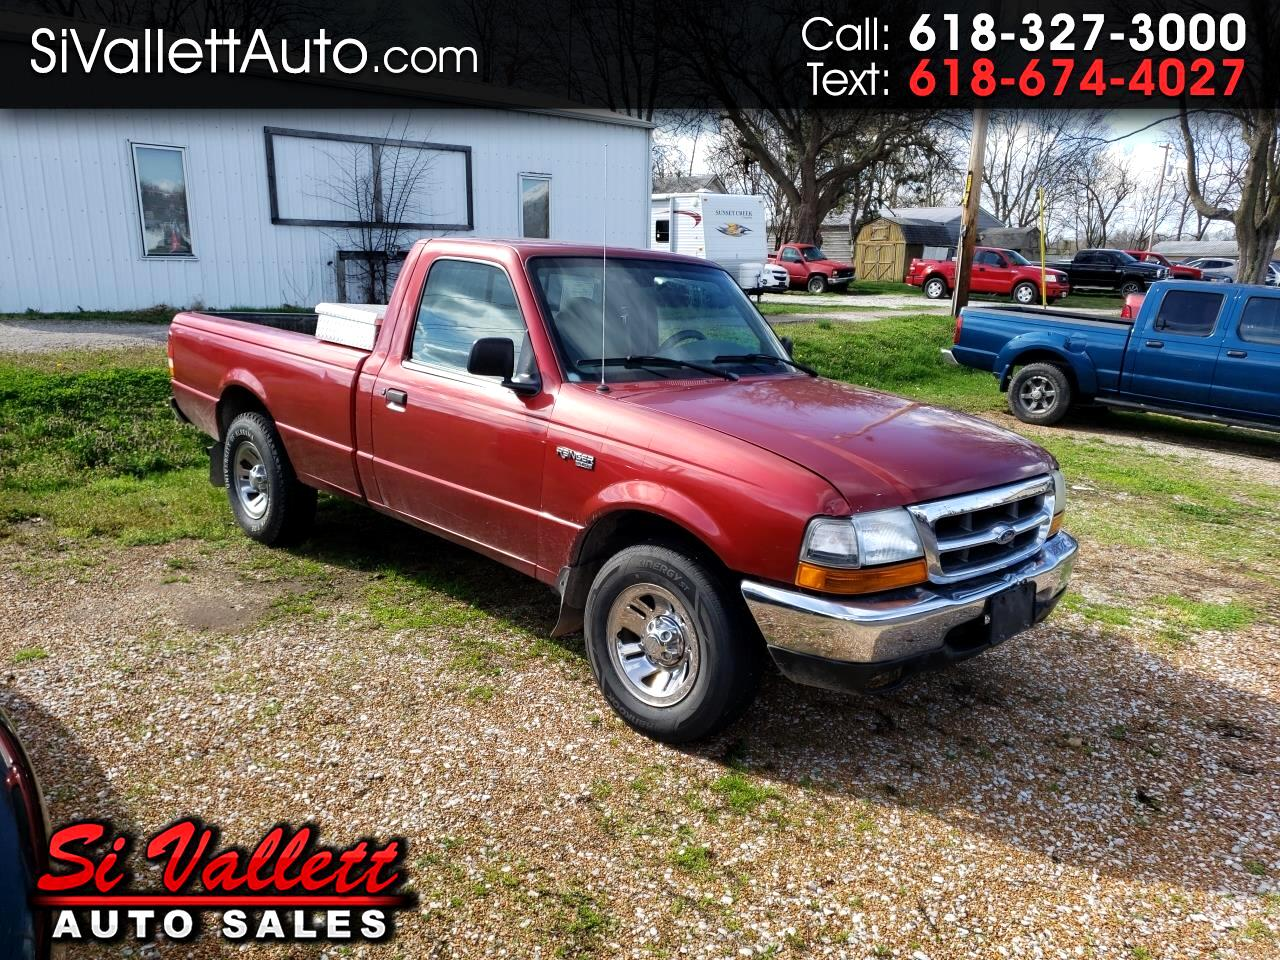 Used 1999 Ford Ranger for Sale in St  Louis MO 63101 SI